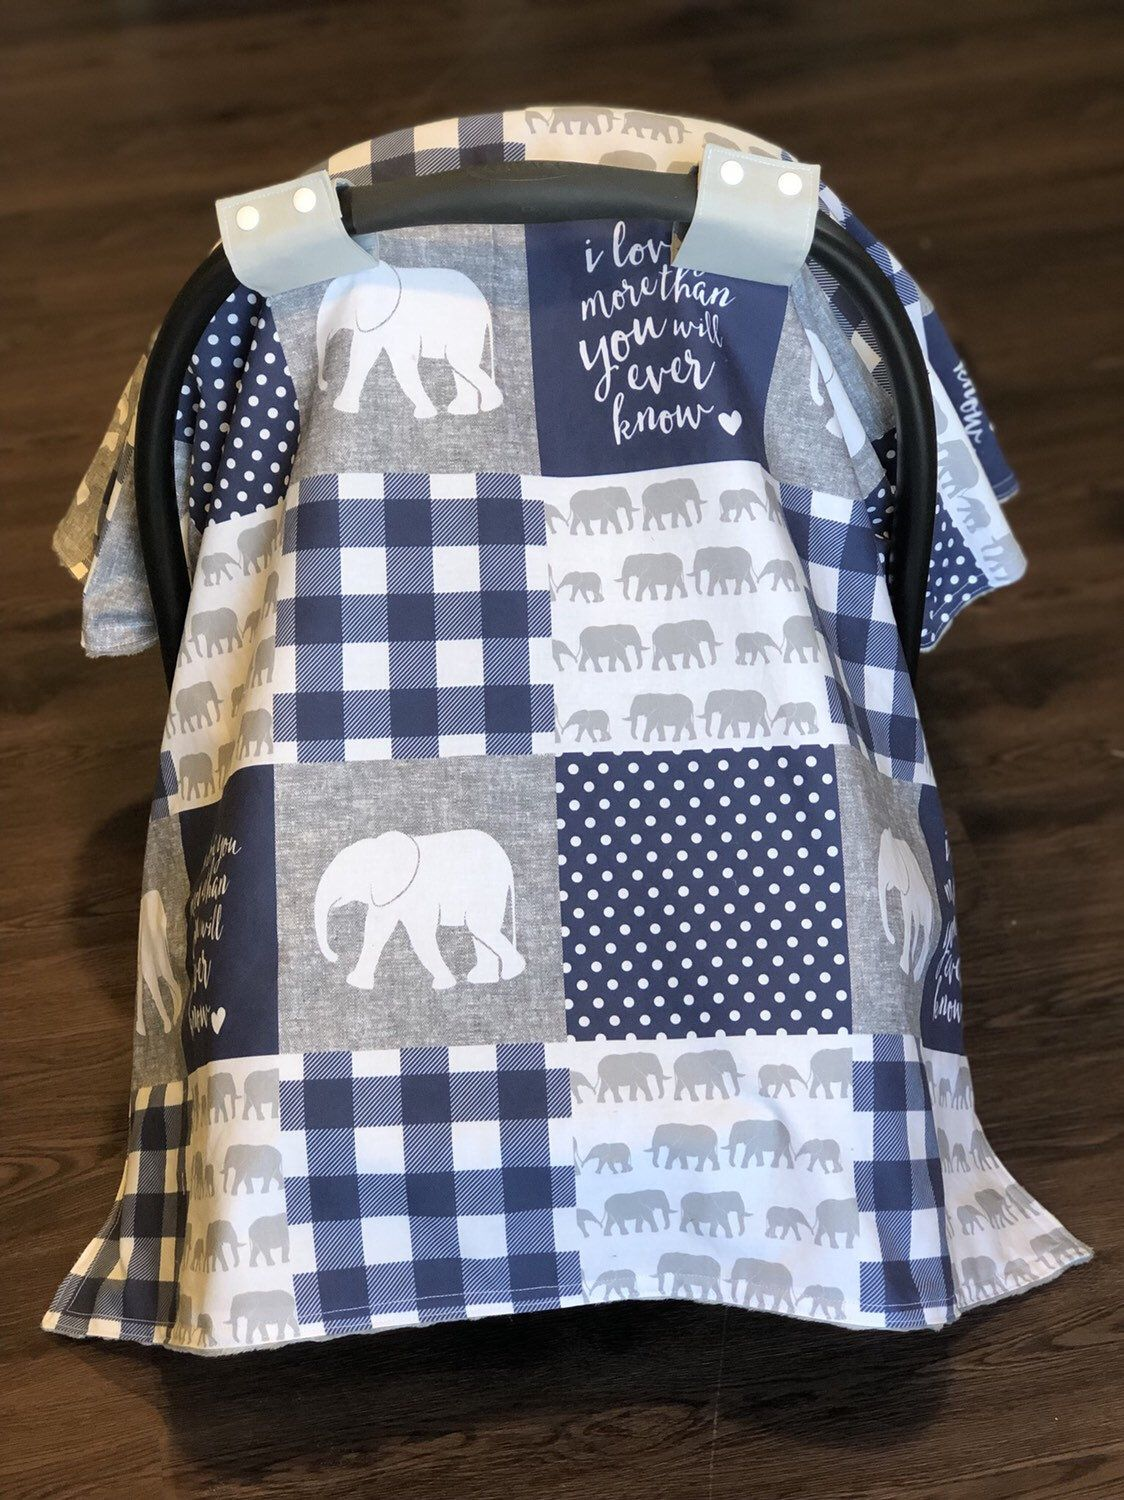 Excited to share the latest addition to my #etsy shop: Baby Boy Car Seat Canopy, Elephant Car Seat cover, Car seat Canopy, Elephant Car seat Canopy, Baby Gift #babyshower #boycarseatcanopy #boycarseatcover #elephantboycanopy #carseatcoverboy #carseatcover #carseattent #carseatcanopy #elephantnursery #babyboyblankets